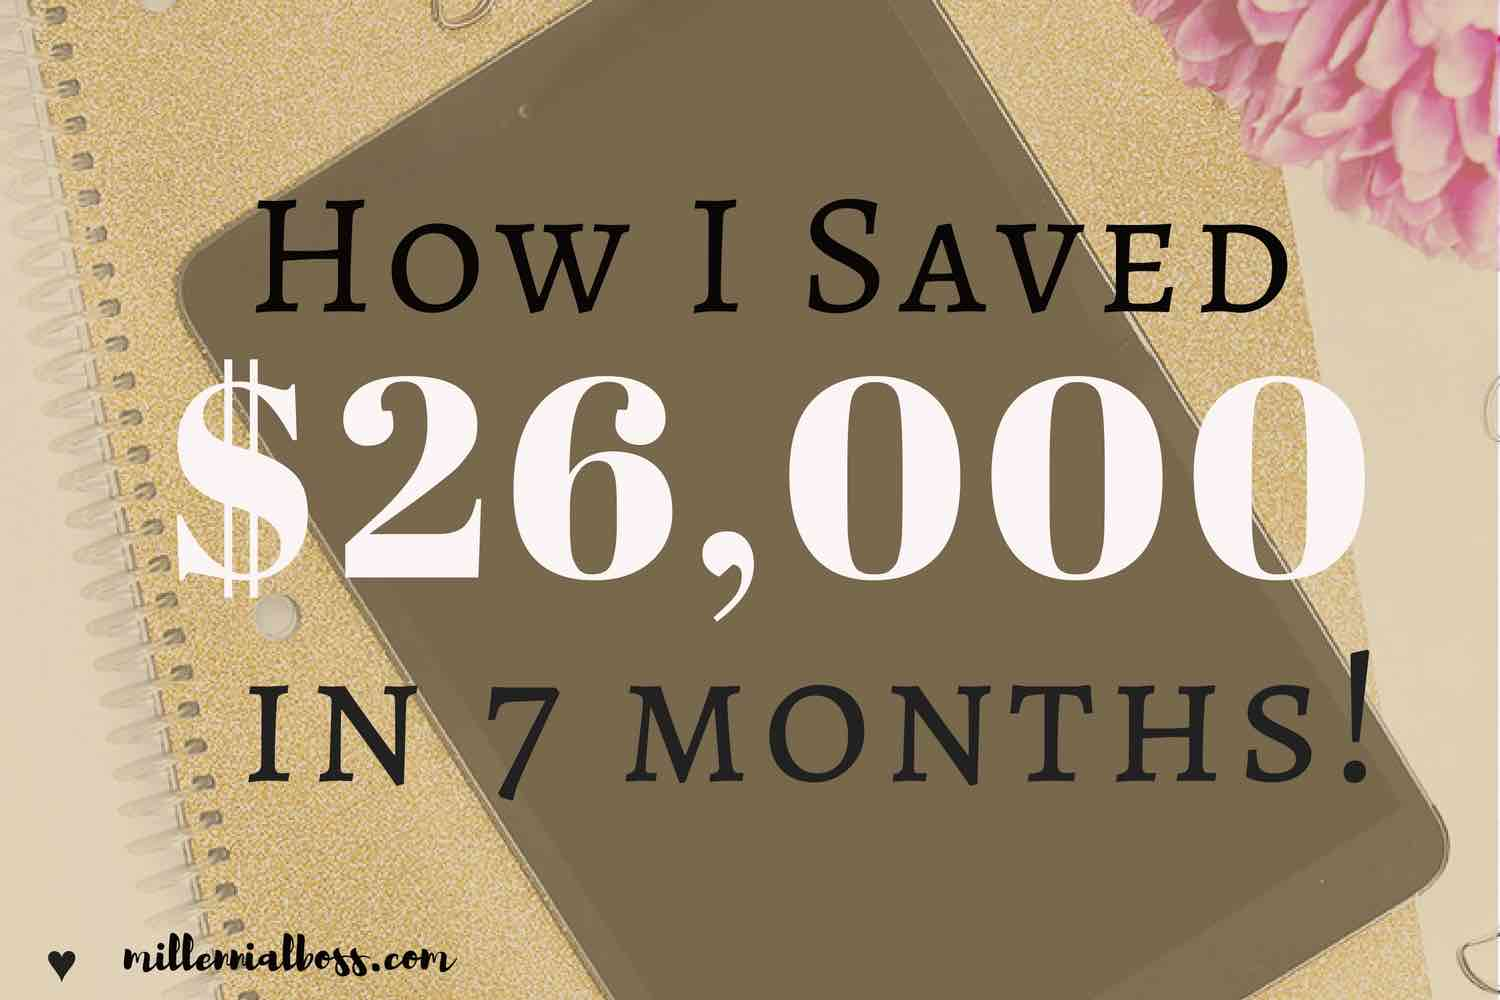 How To Save $26,000 In 7 Months. Intego Backup Assistant Review. Viking Culinary Center Fha Refinance Cash Out. Low Home Interest Rates Law School In Arizona. Exterior Painting Temperatures. Captiol One Auto Finance Mitsubishi Dealer Md. Charitable Lead Unitrust Embarq Phone Service. The Church Of Jacksonville Car Insurance Aaa. Masters In Healthcare Administration Nyc